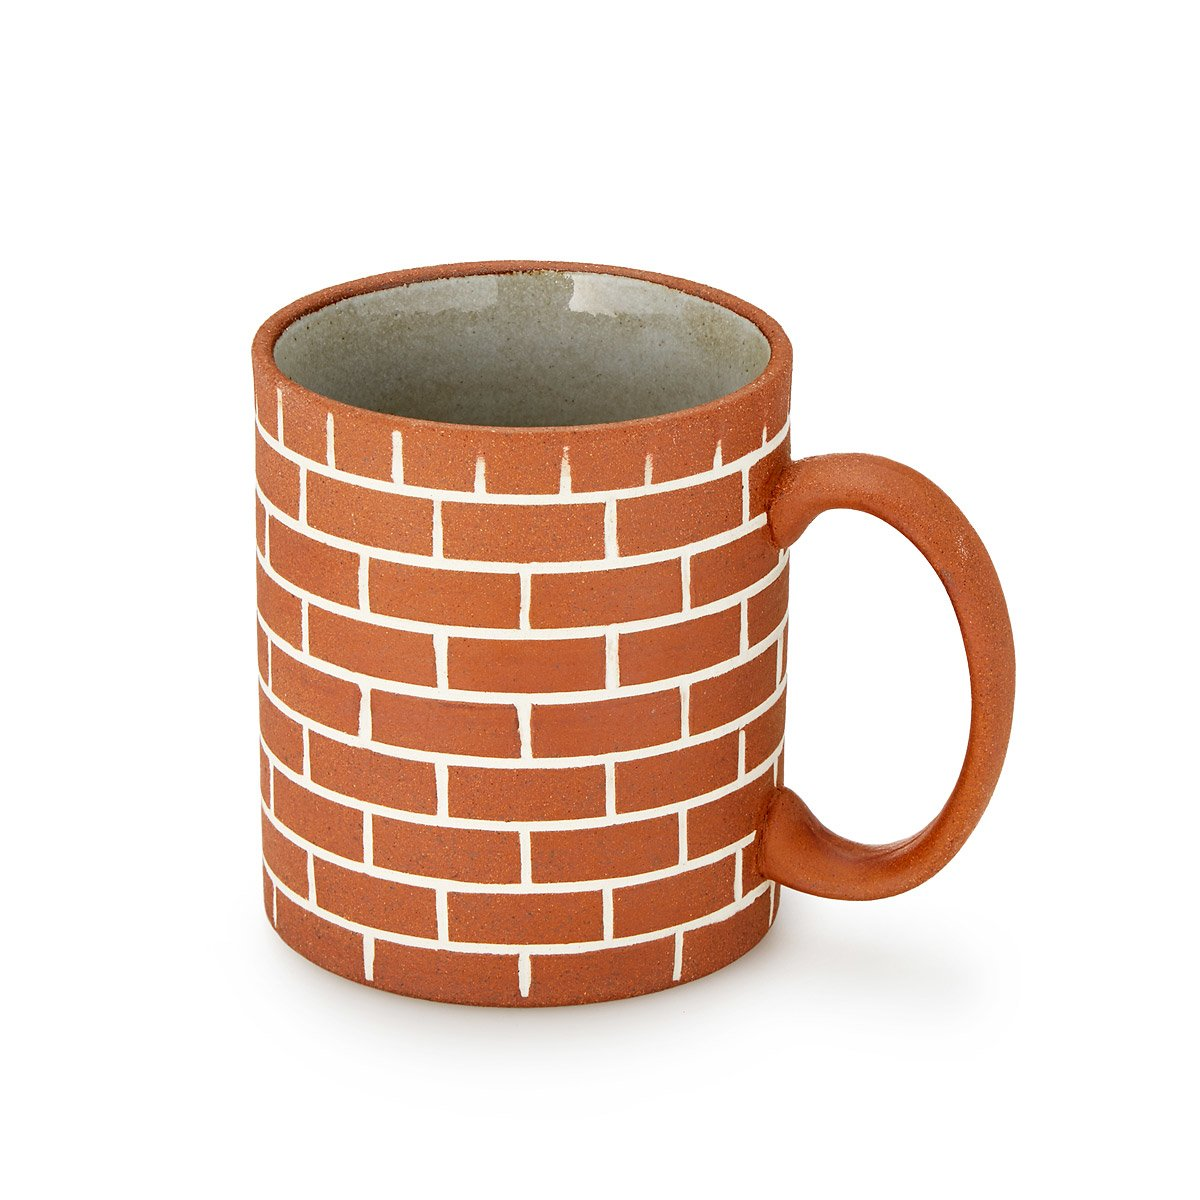 stylish design ideas unique coffee cups. Brick Wall Mug Ceramic Greek Coffee Cup  We Are Happy To Serve You Diner